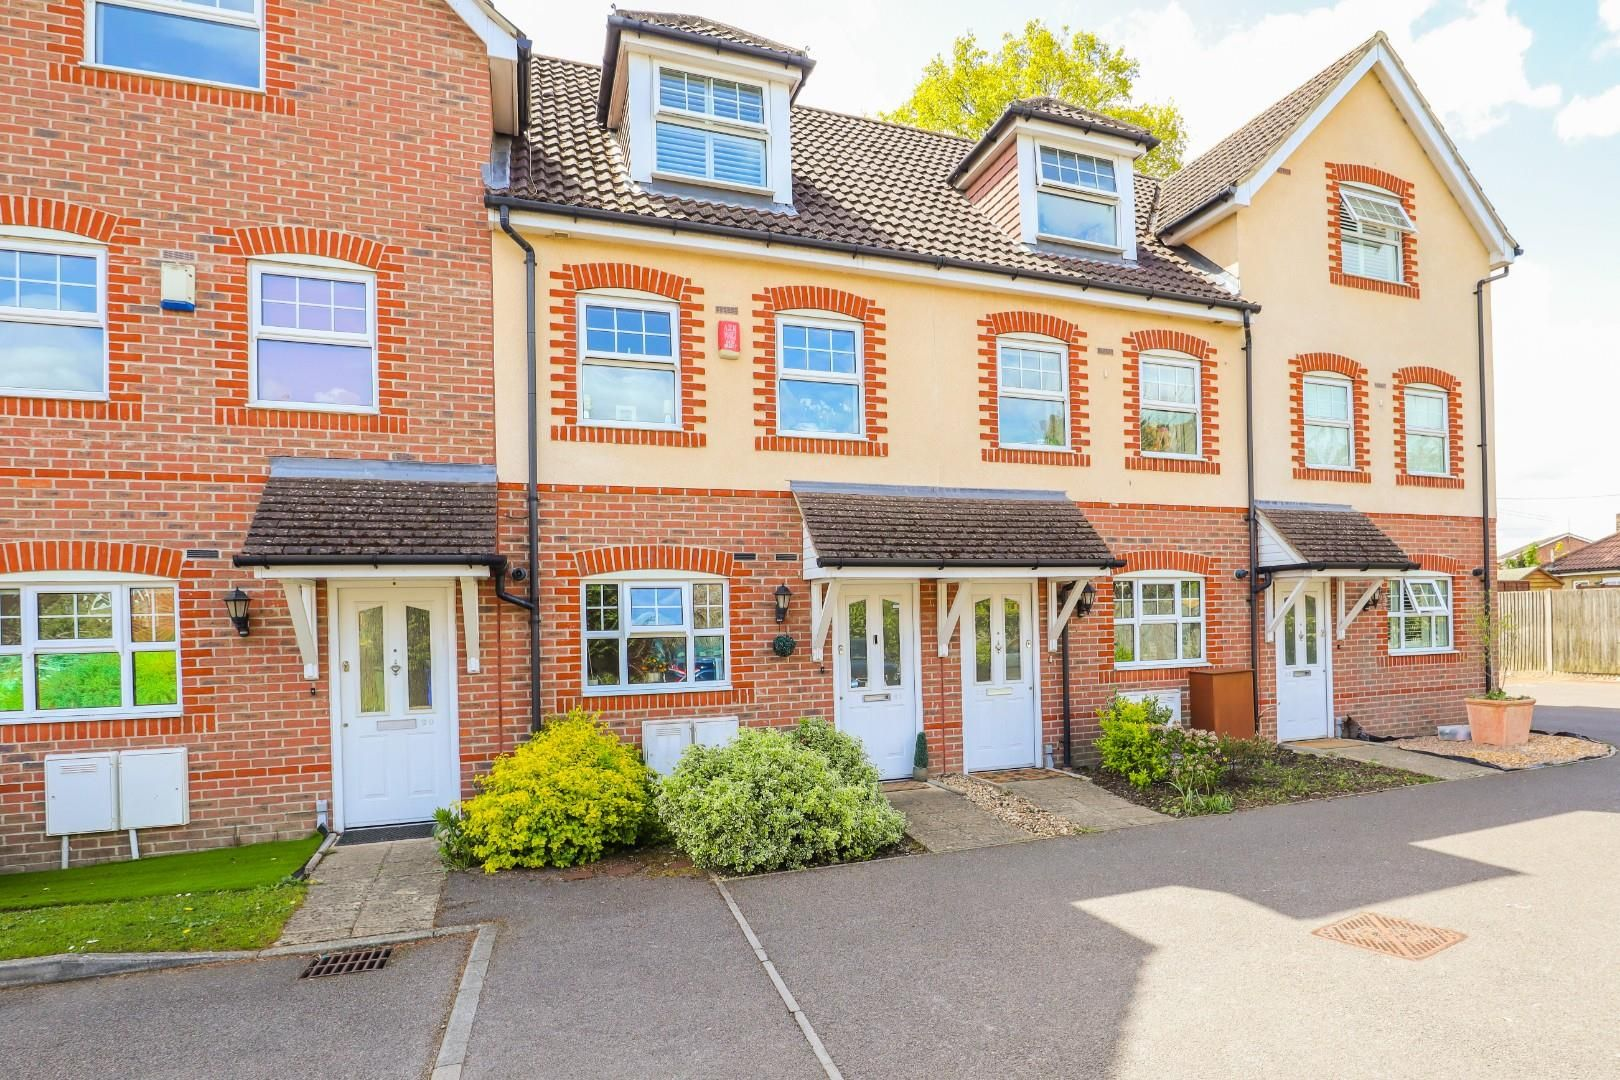 3 bed town house for sale, GU14